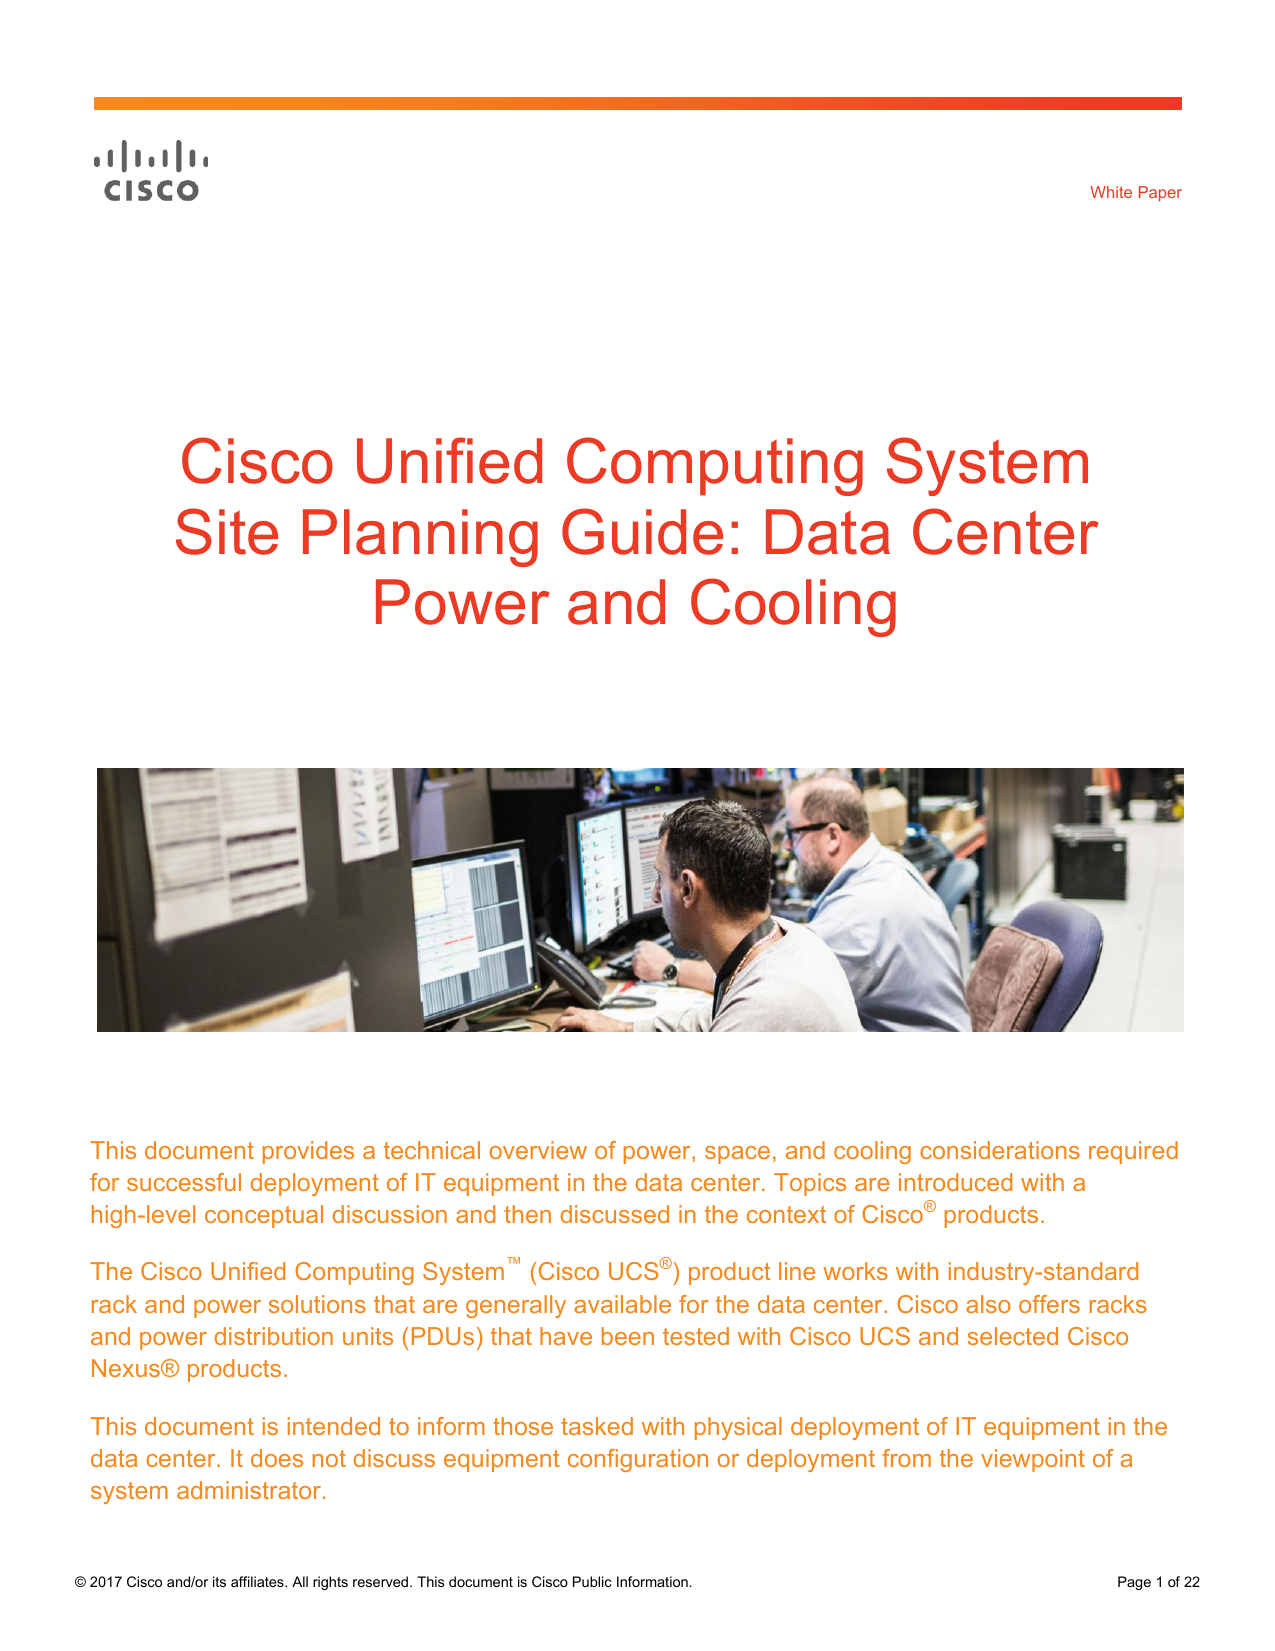 Data Center Power and Cooling White Paper